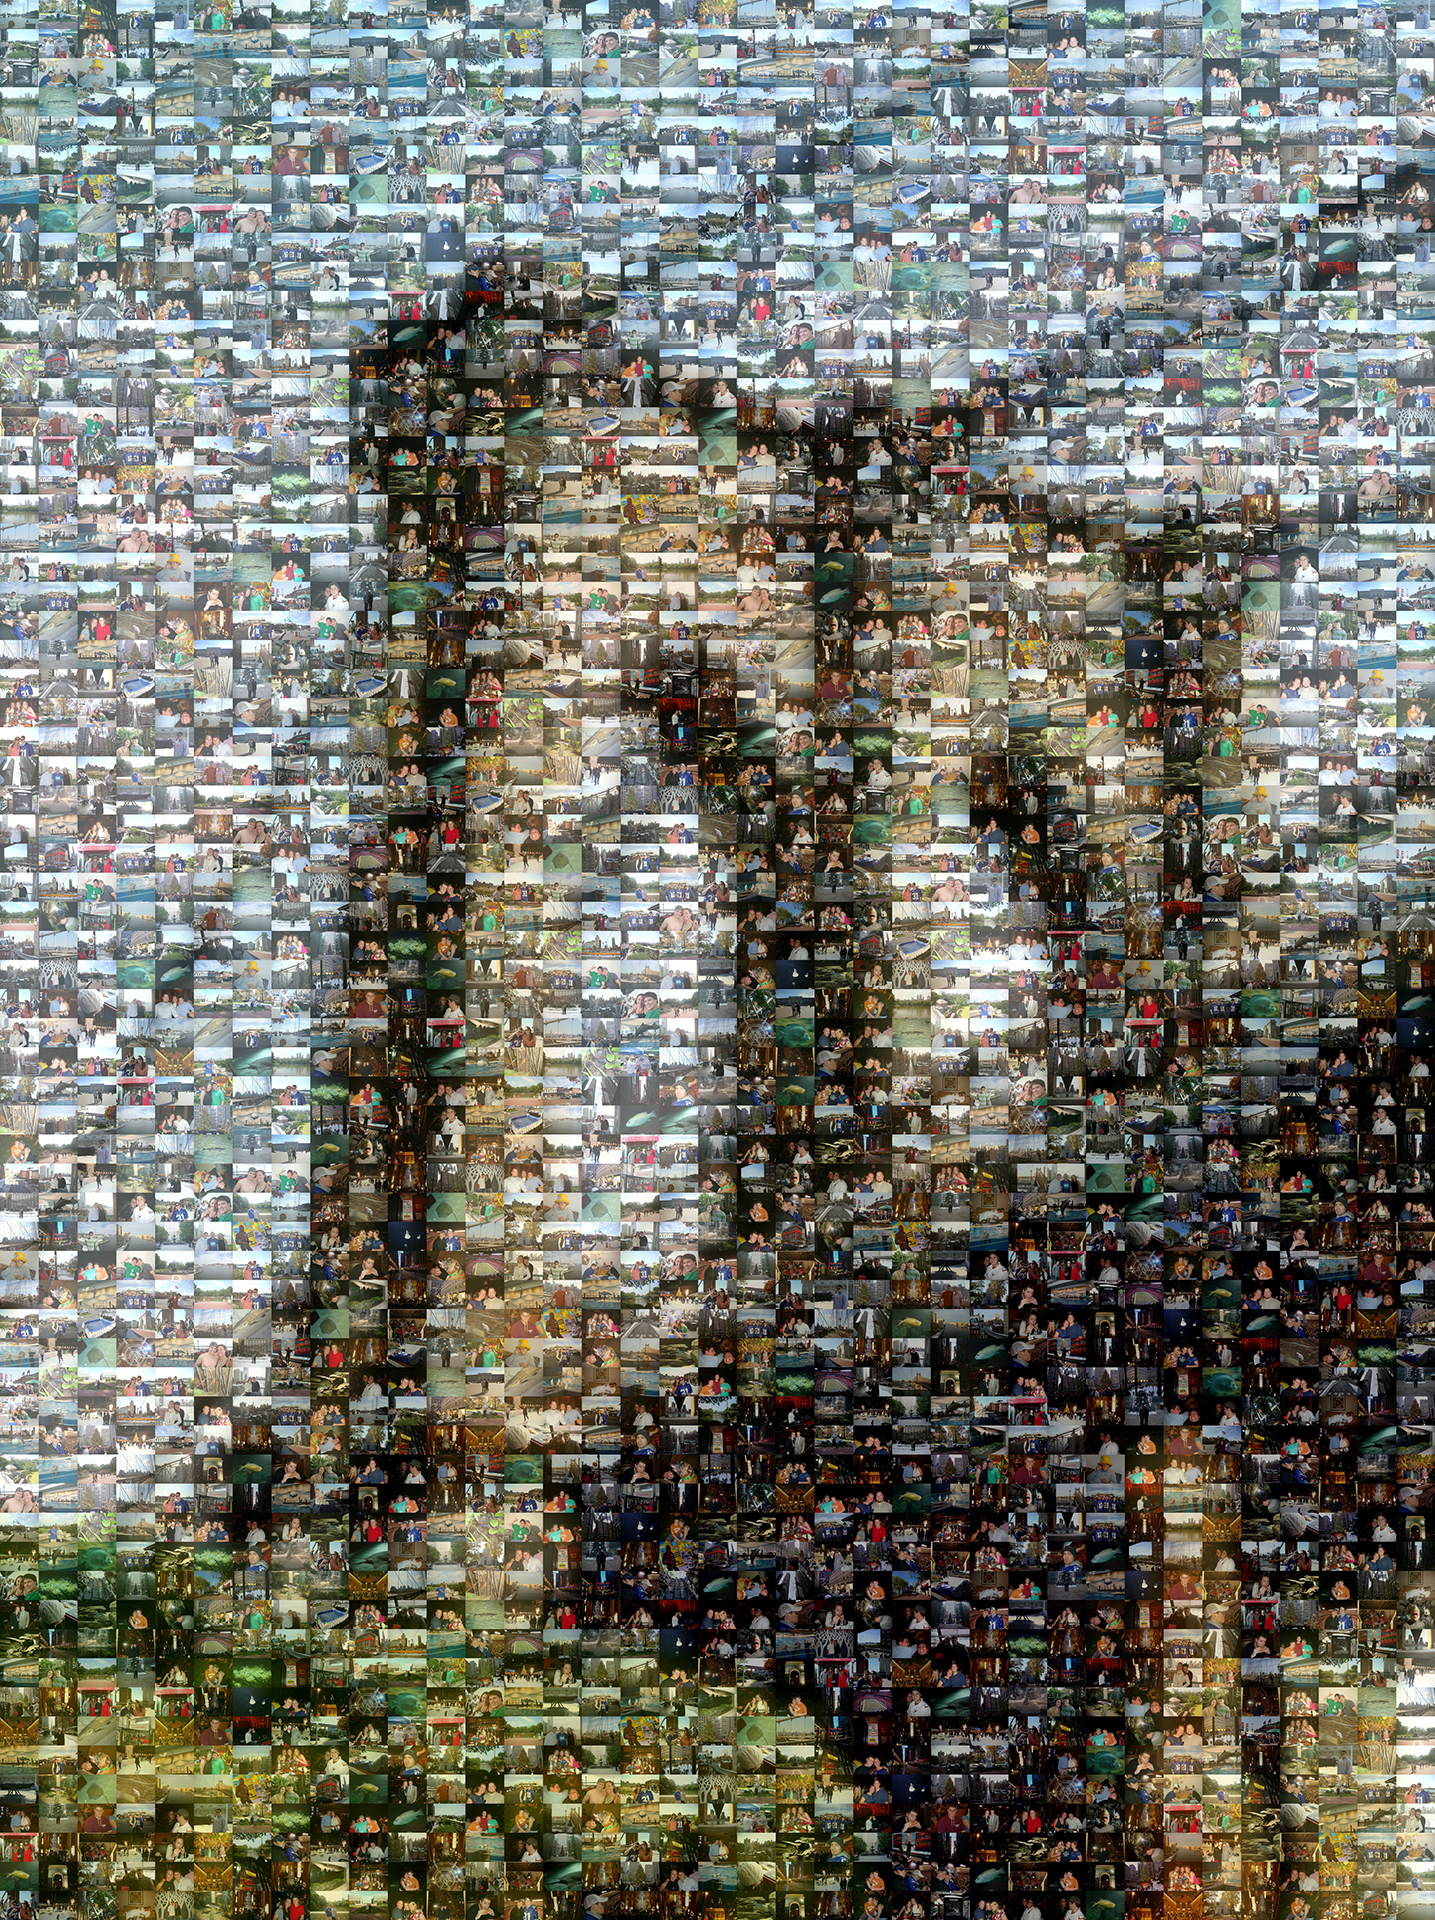 photo mosaic created using 196 user submitted photos